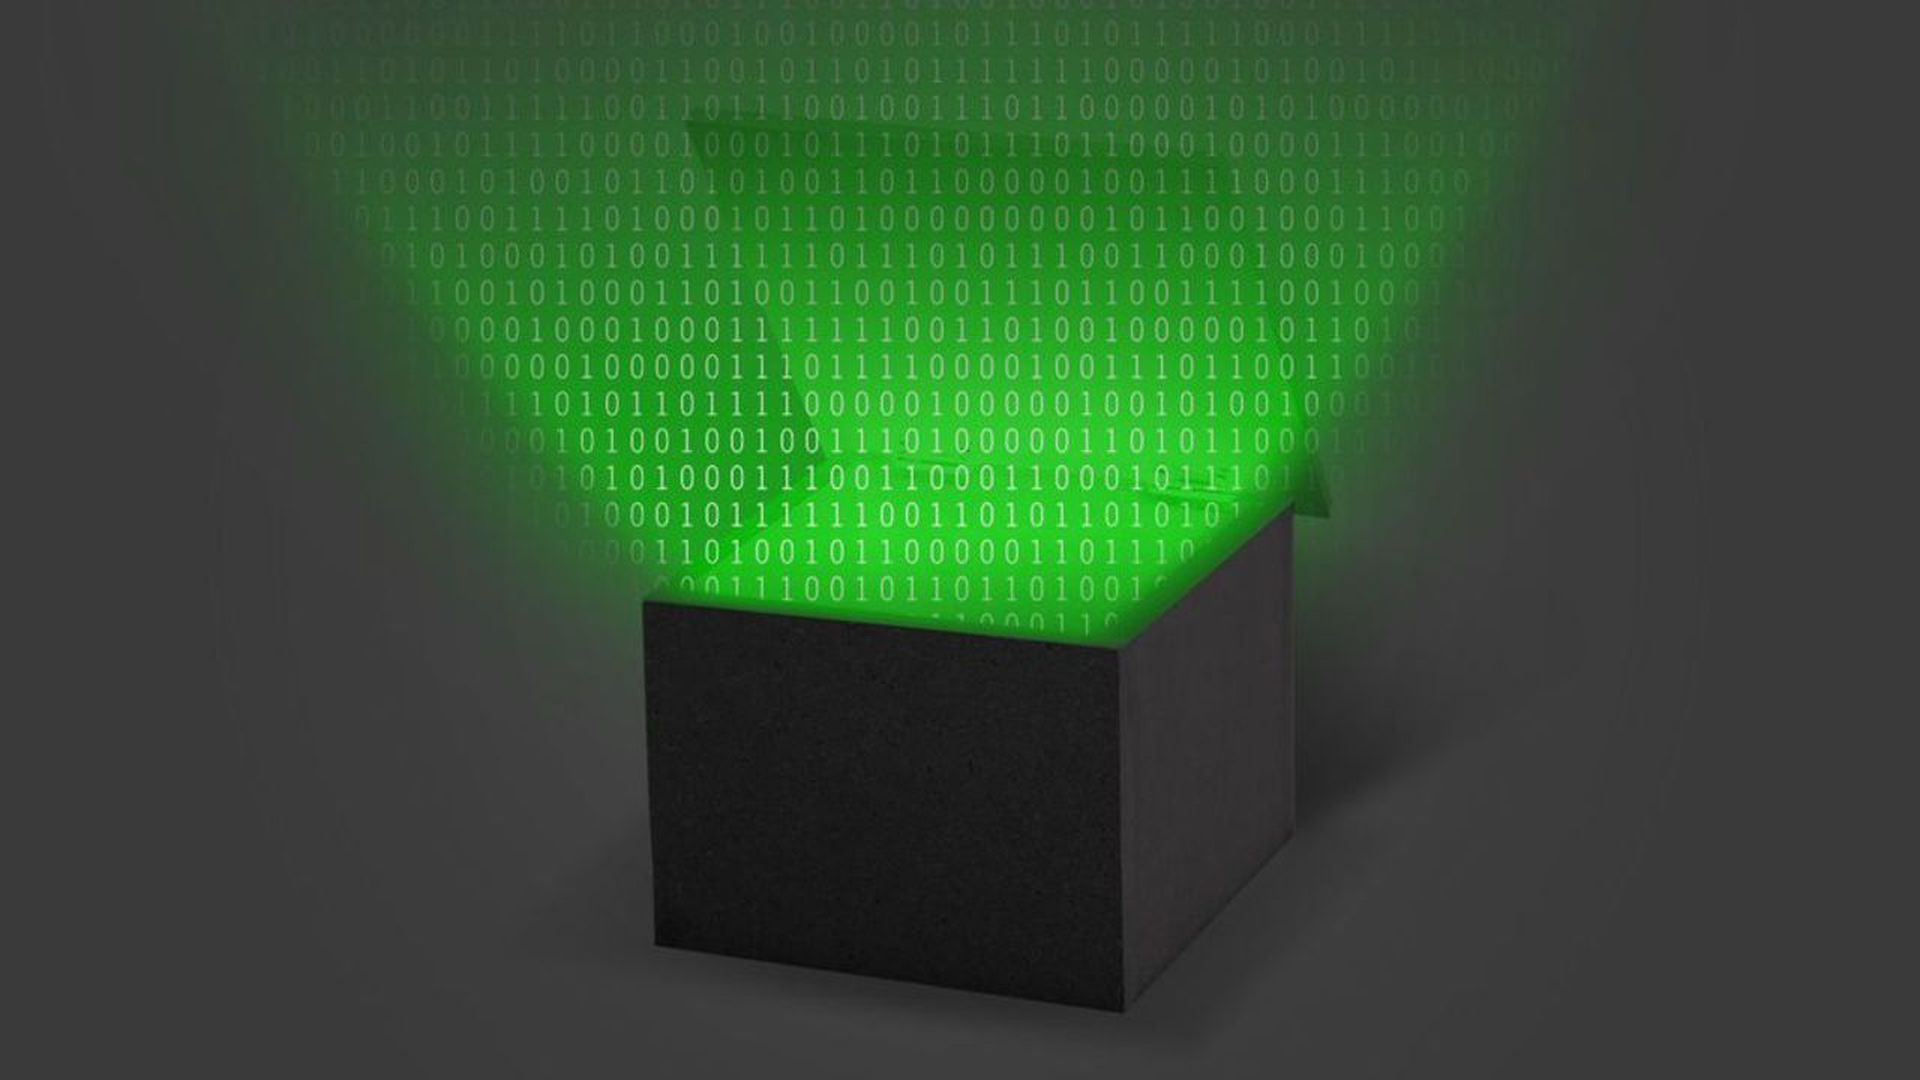 Illustration of a box that is emitting binary numbers